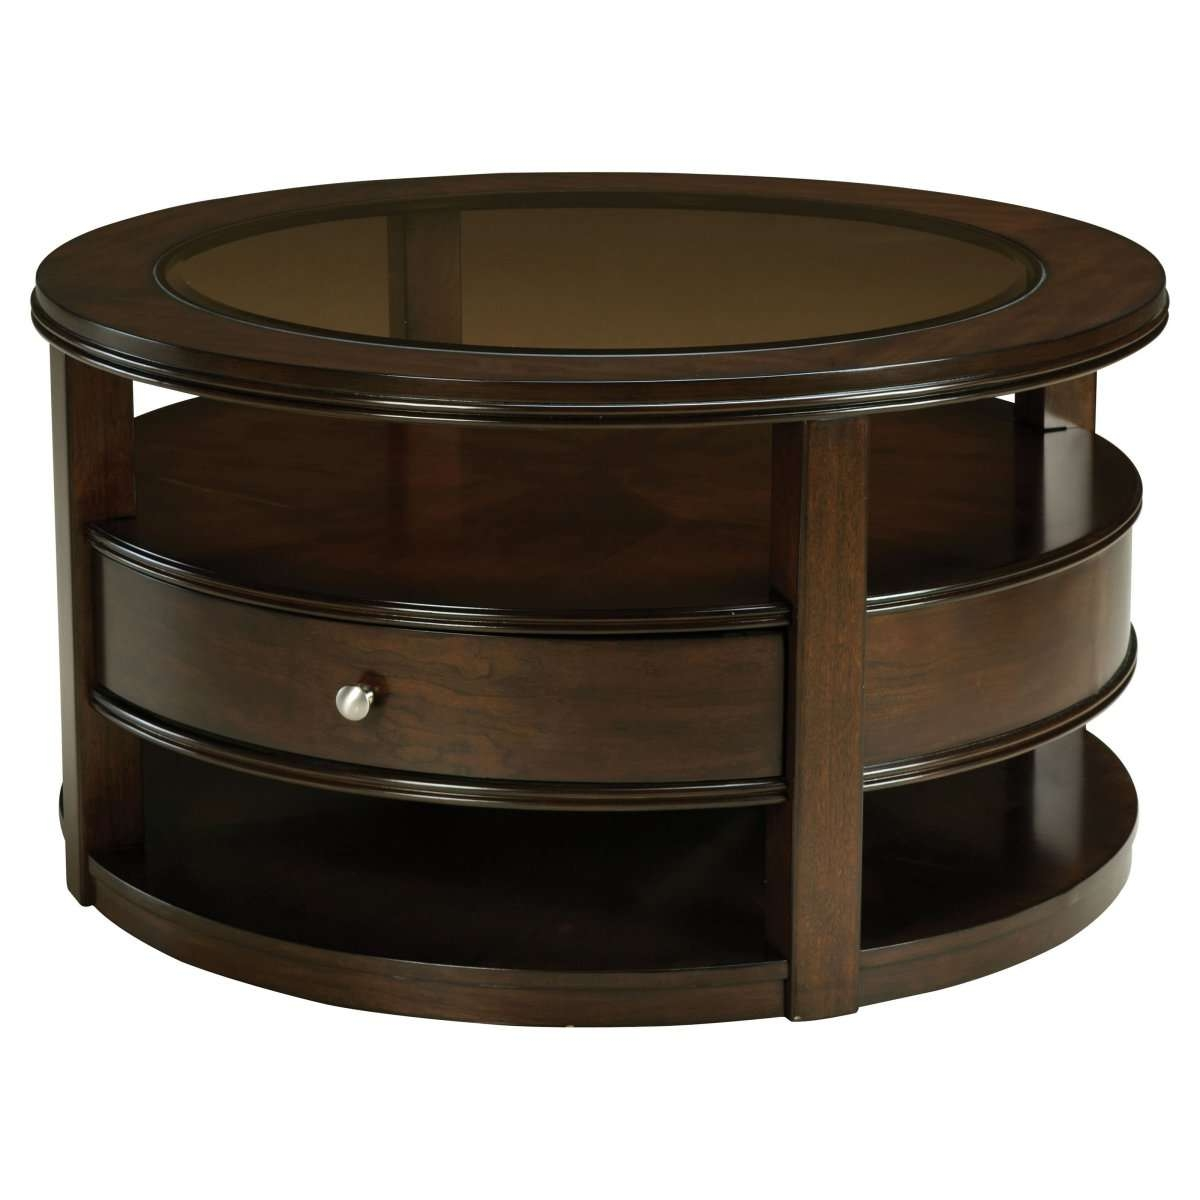 Round Coffee Tables With Storage (View 16 of 20)